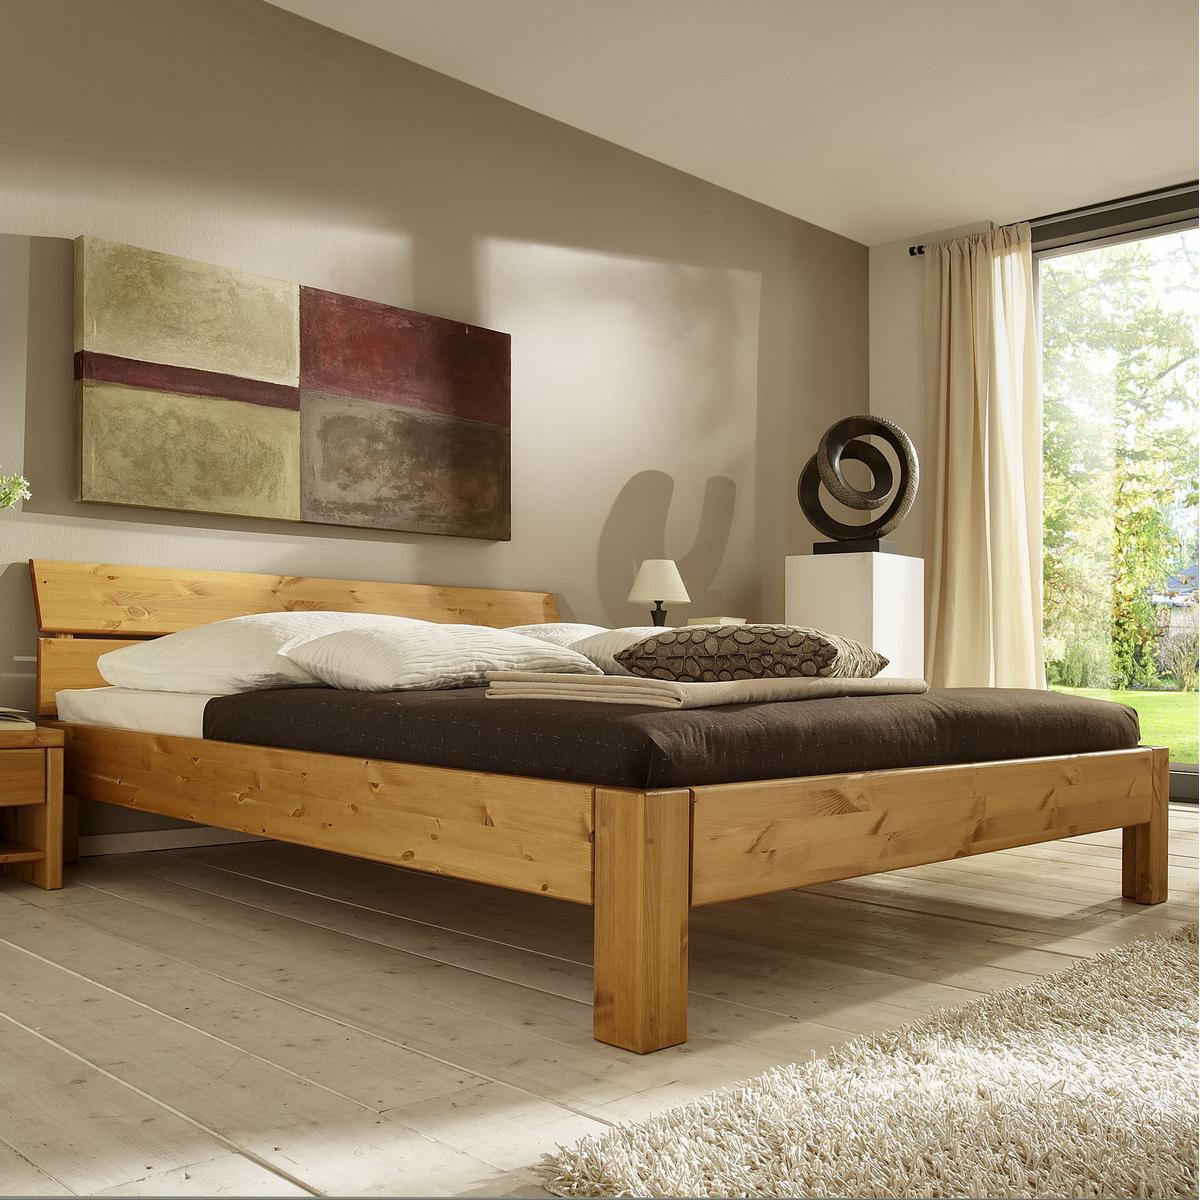 massivholz bett 180 200 holzbett mit bettkasten kiefer. Black Bedroom Furniture Sets. Home Design Ideas